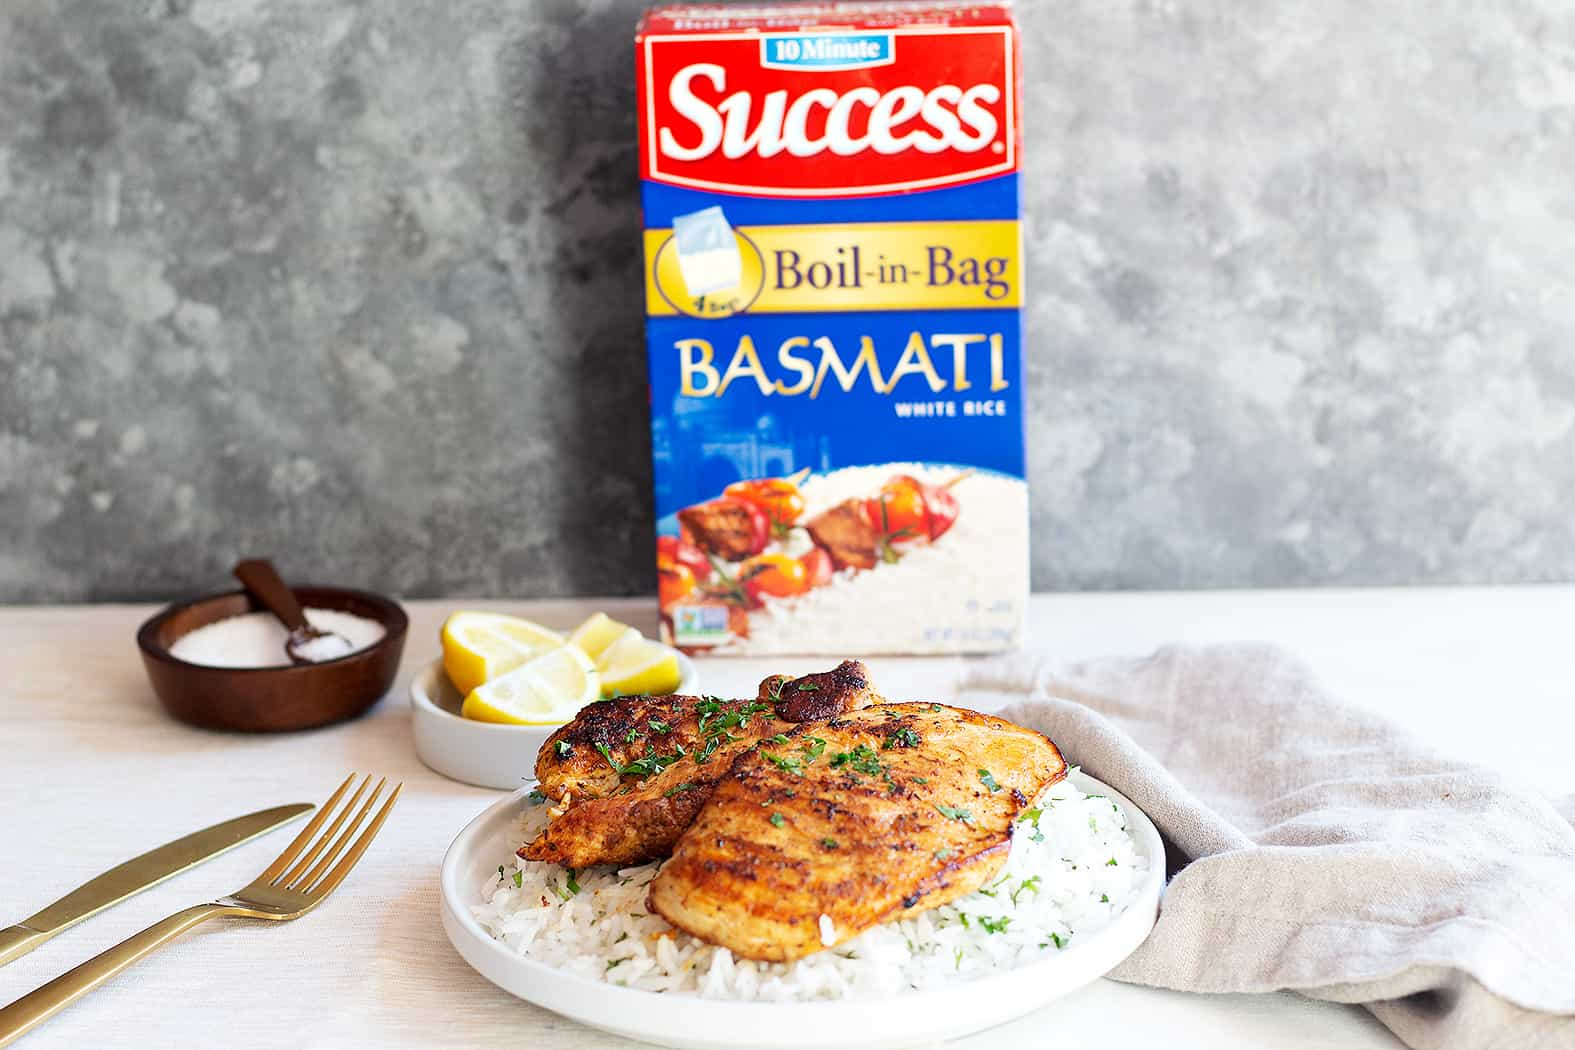 sponsored content lemon chicken and rice with success basmati rice